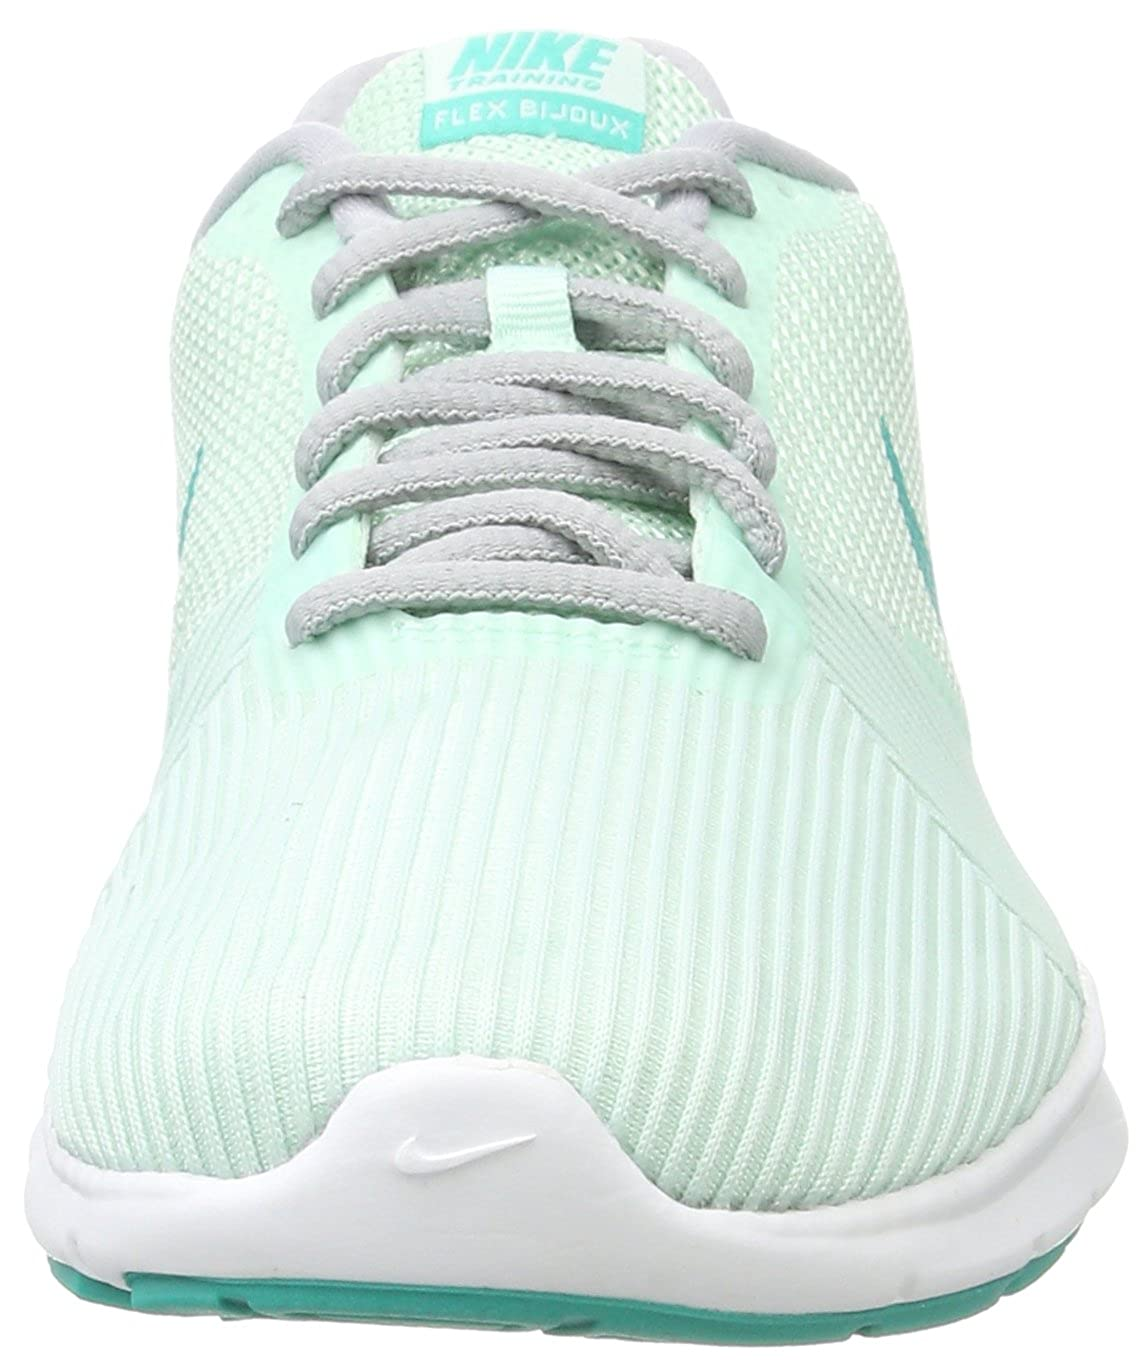 Nike Women s Flex Bijoux Cross Trainer Shoes